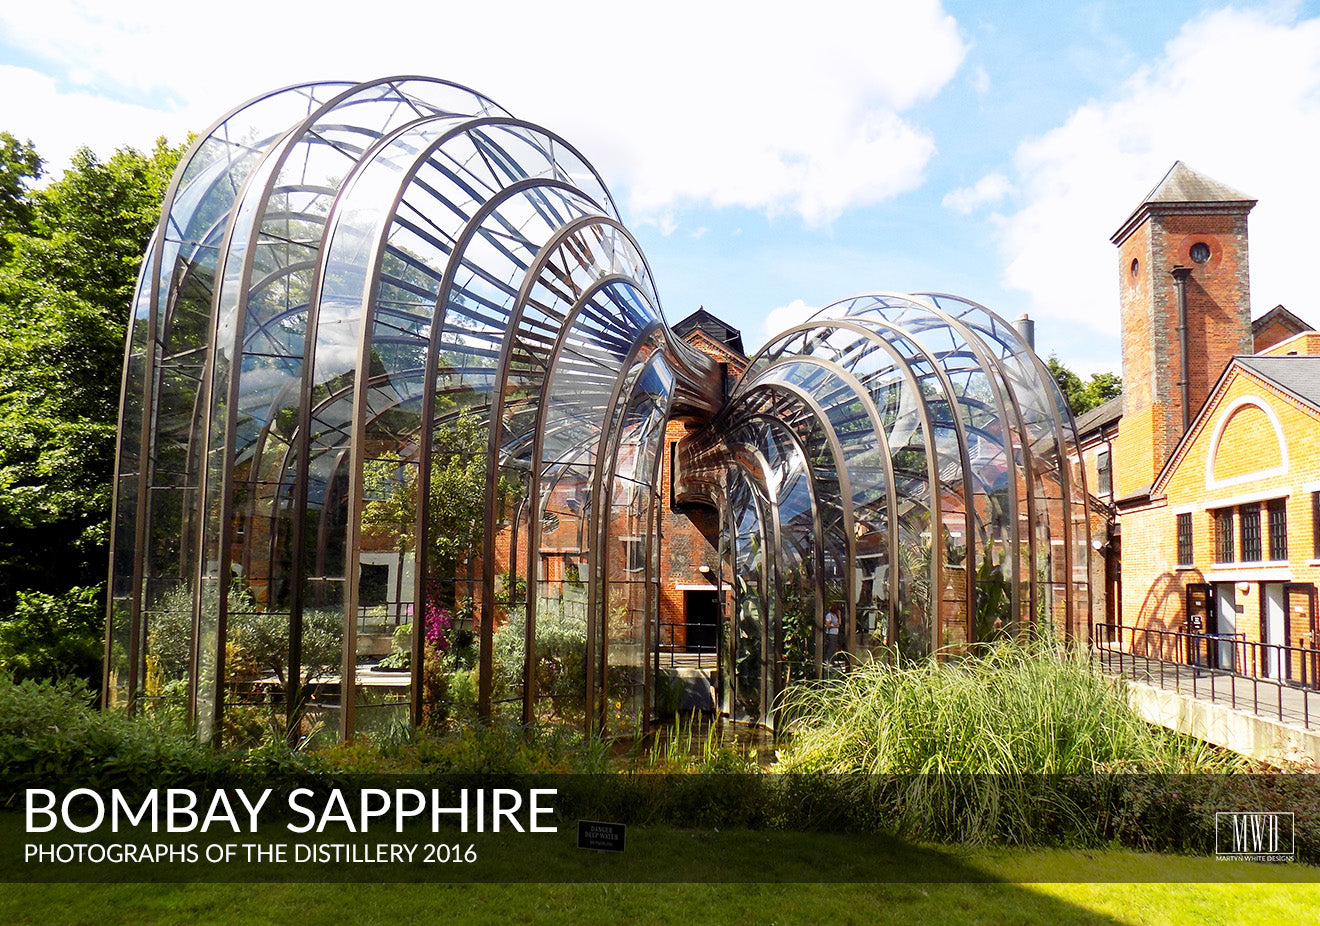 Thomas Heatherwick Glass Houses for Bombay Sapphire